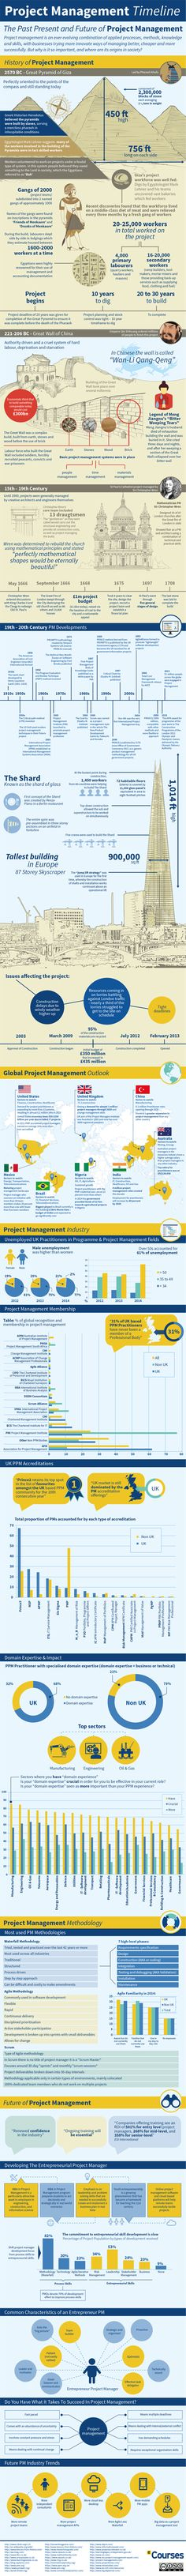 Project Management Timeline | Telegraph Study Advice